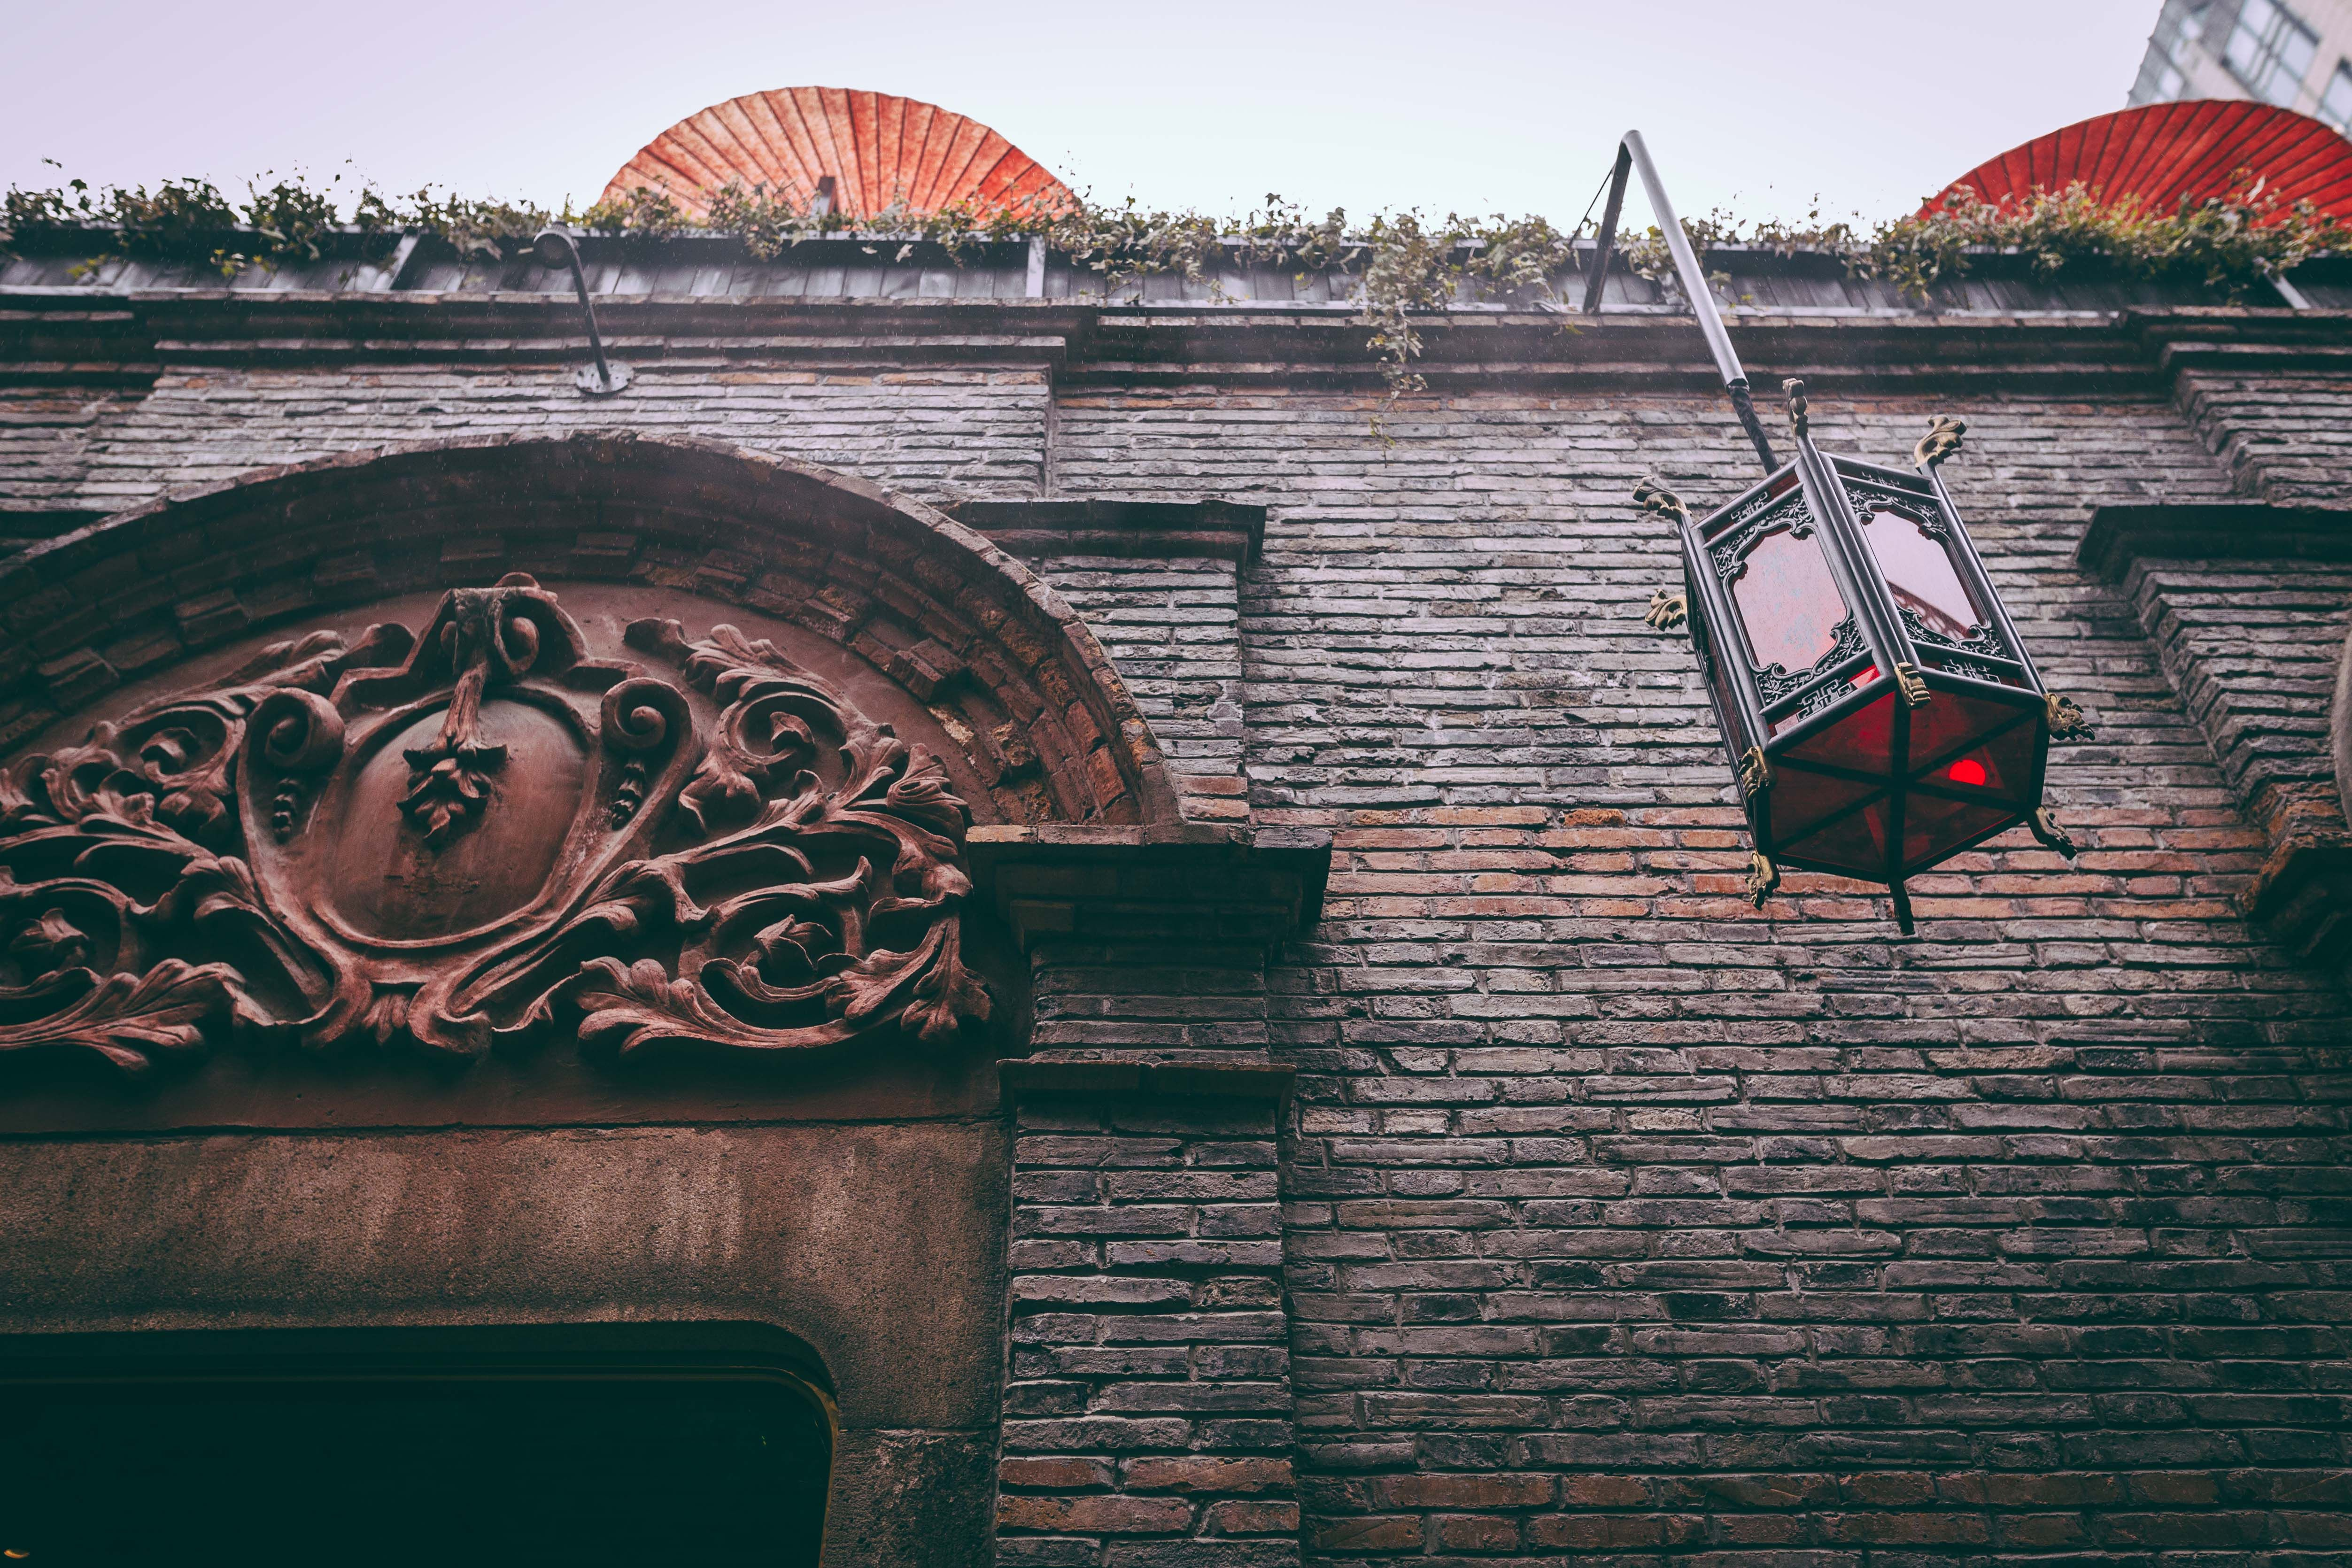 Discovered in the narrow alleyways of shanghais xintiandi